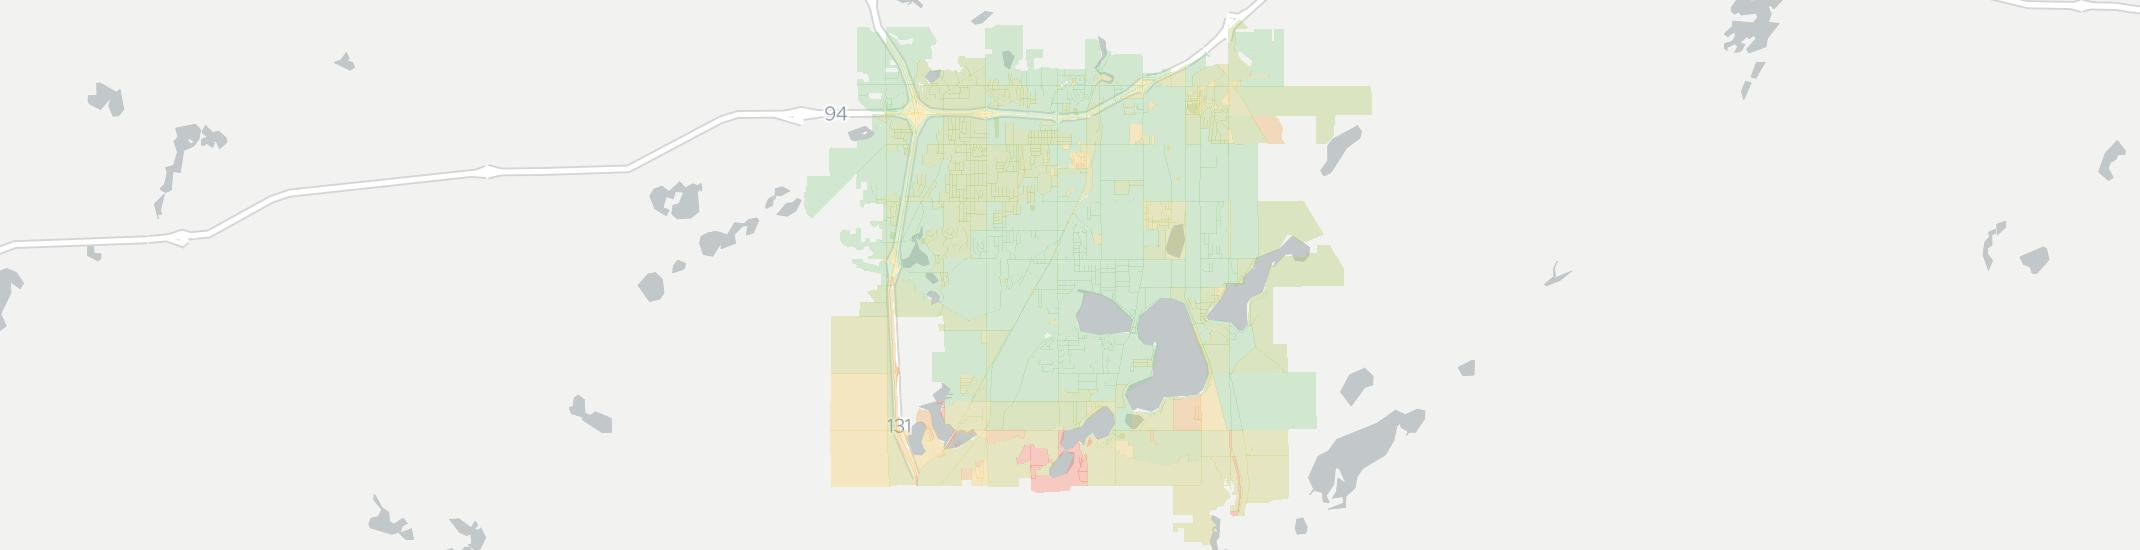 Portage Internet Competition Map. Click for interactive map.